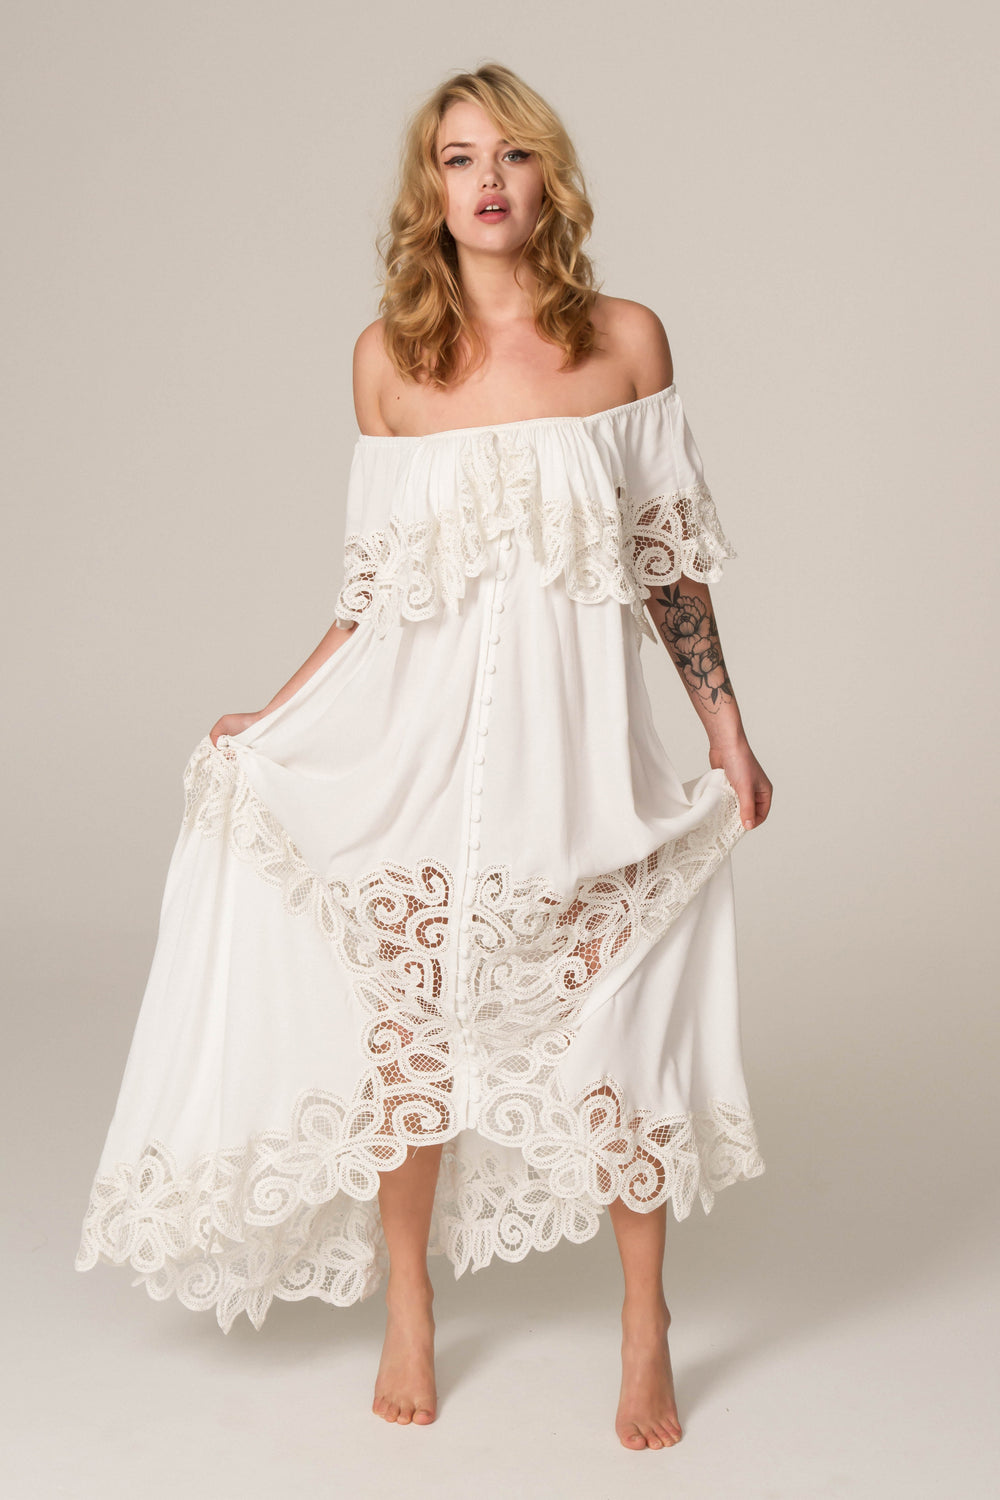 35ab69d679283e Fillyboo - Pretty Tuesday - Hand embroidered off-the-shoulder maxi dress